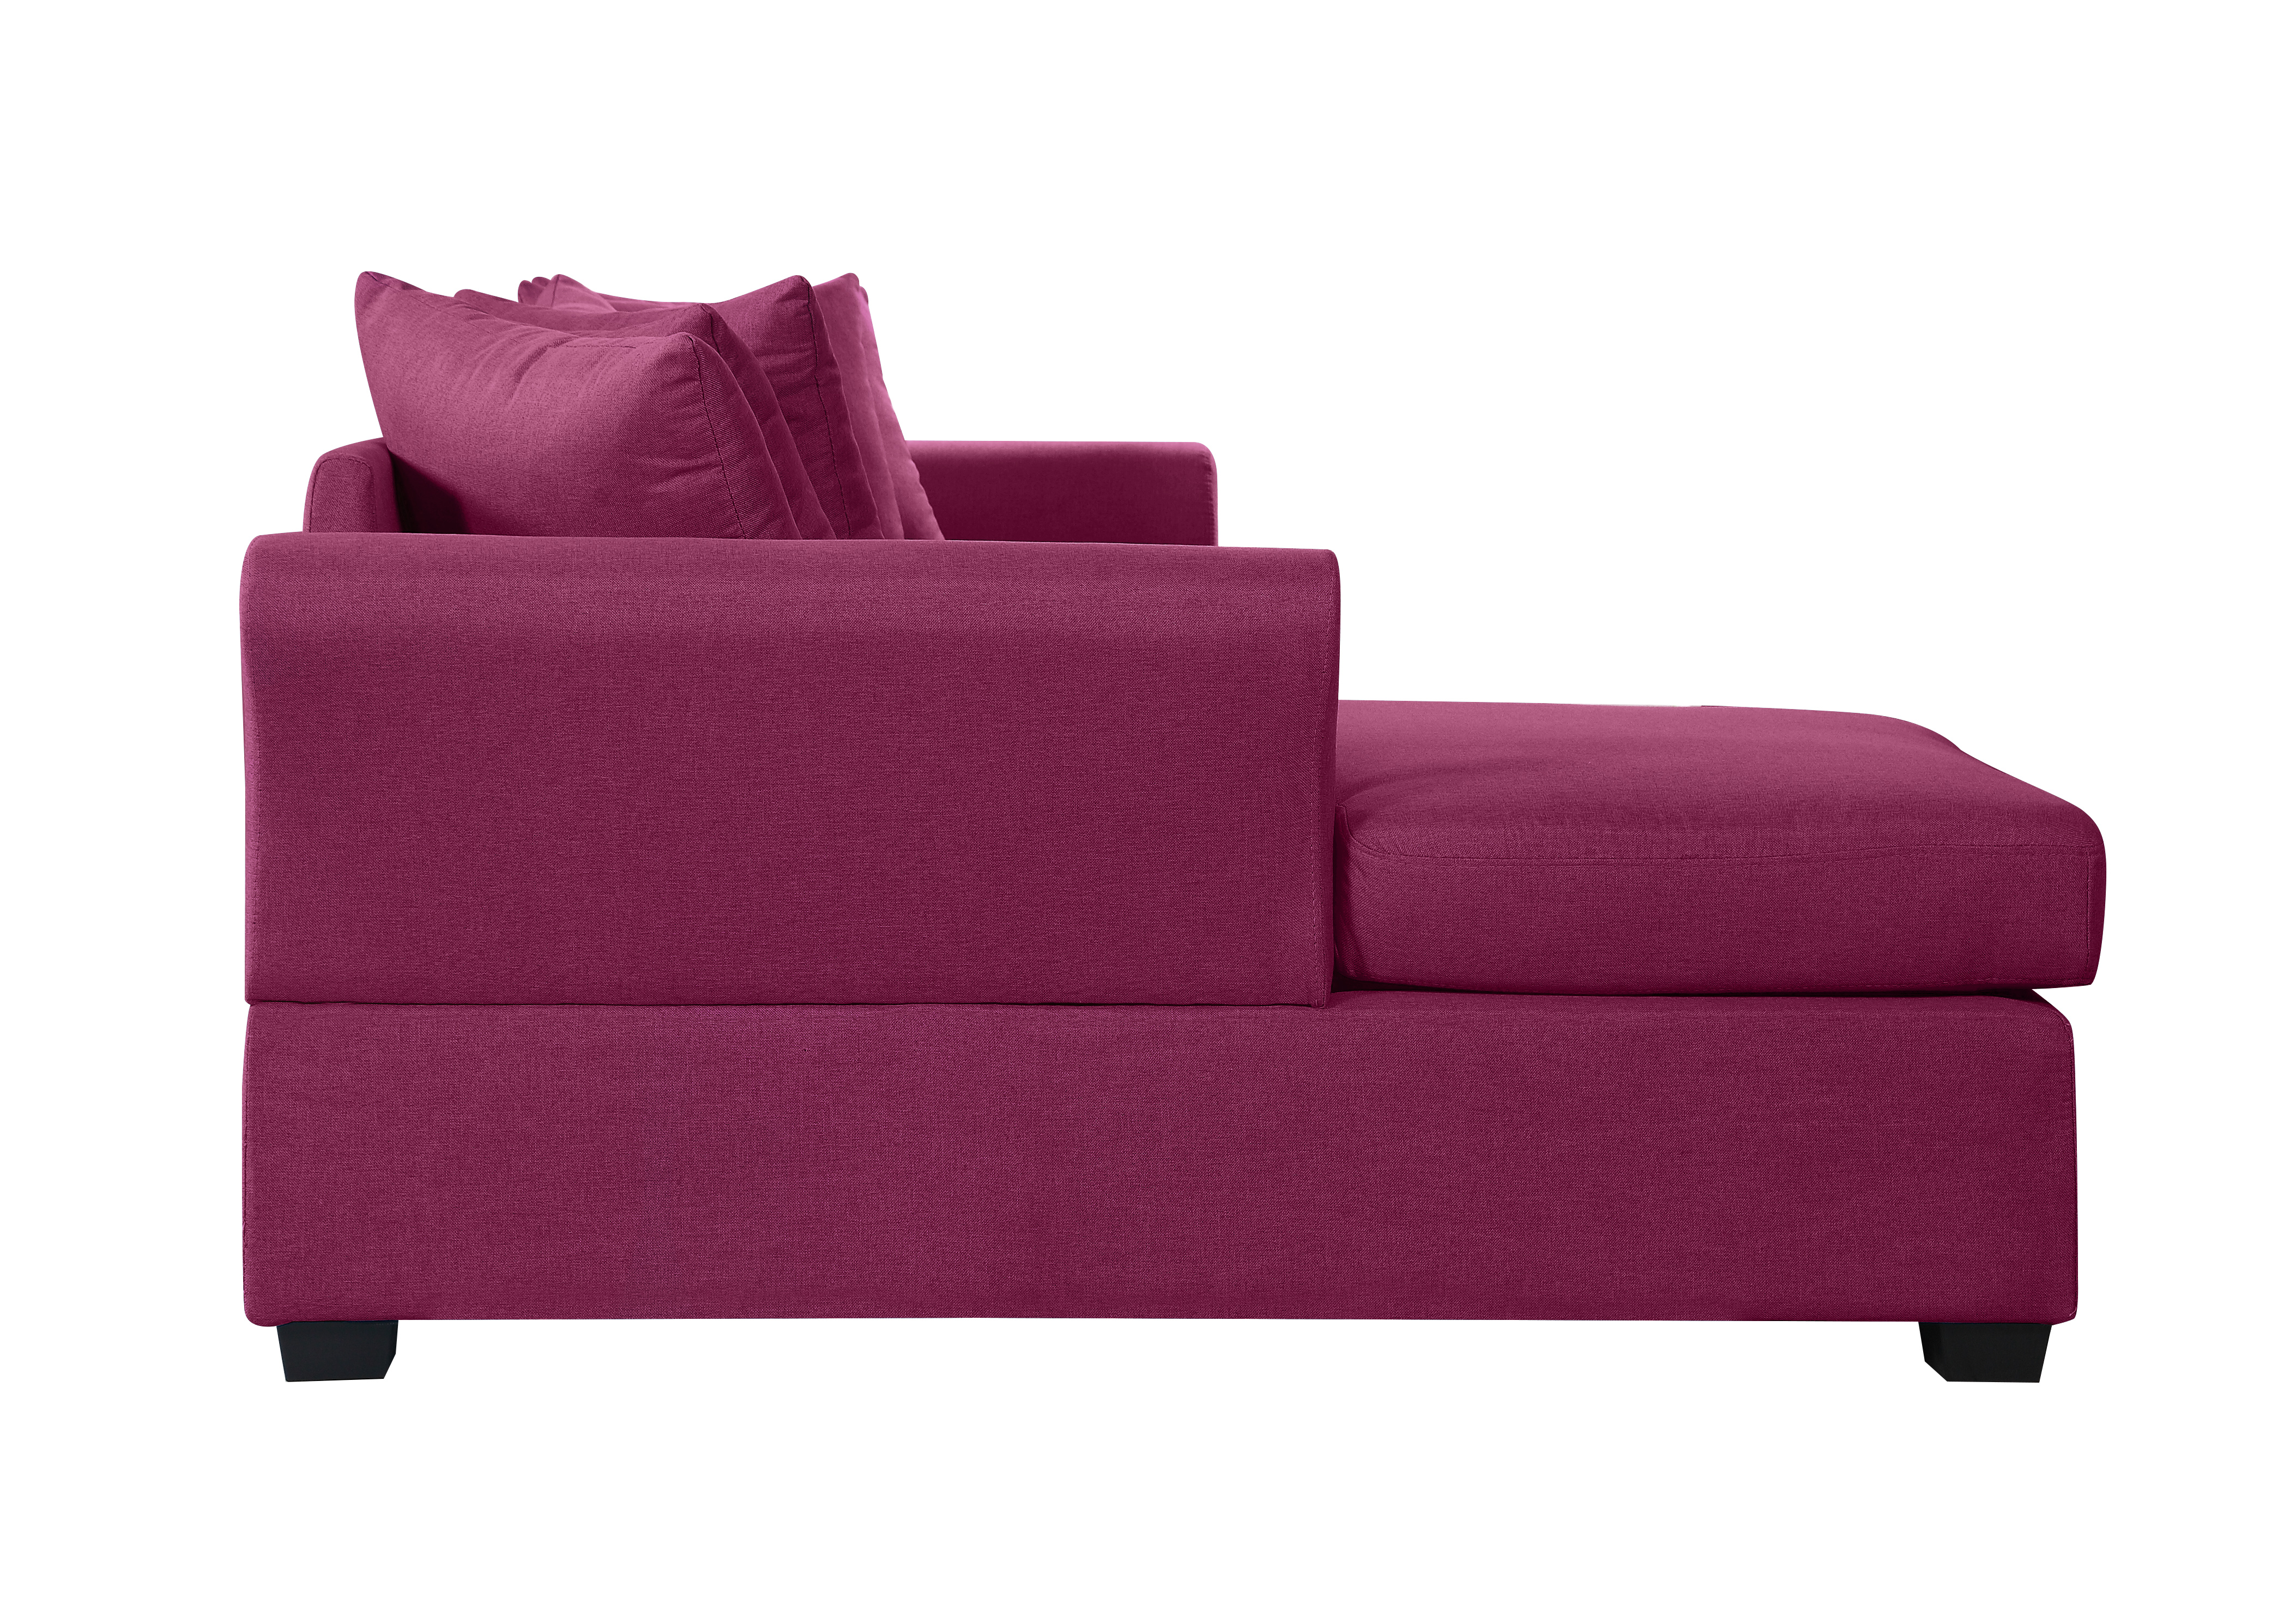 Modern Large Fabric Sectional Sofa with Extra Wide Chaise ...